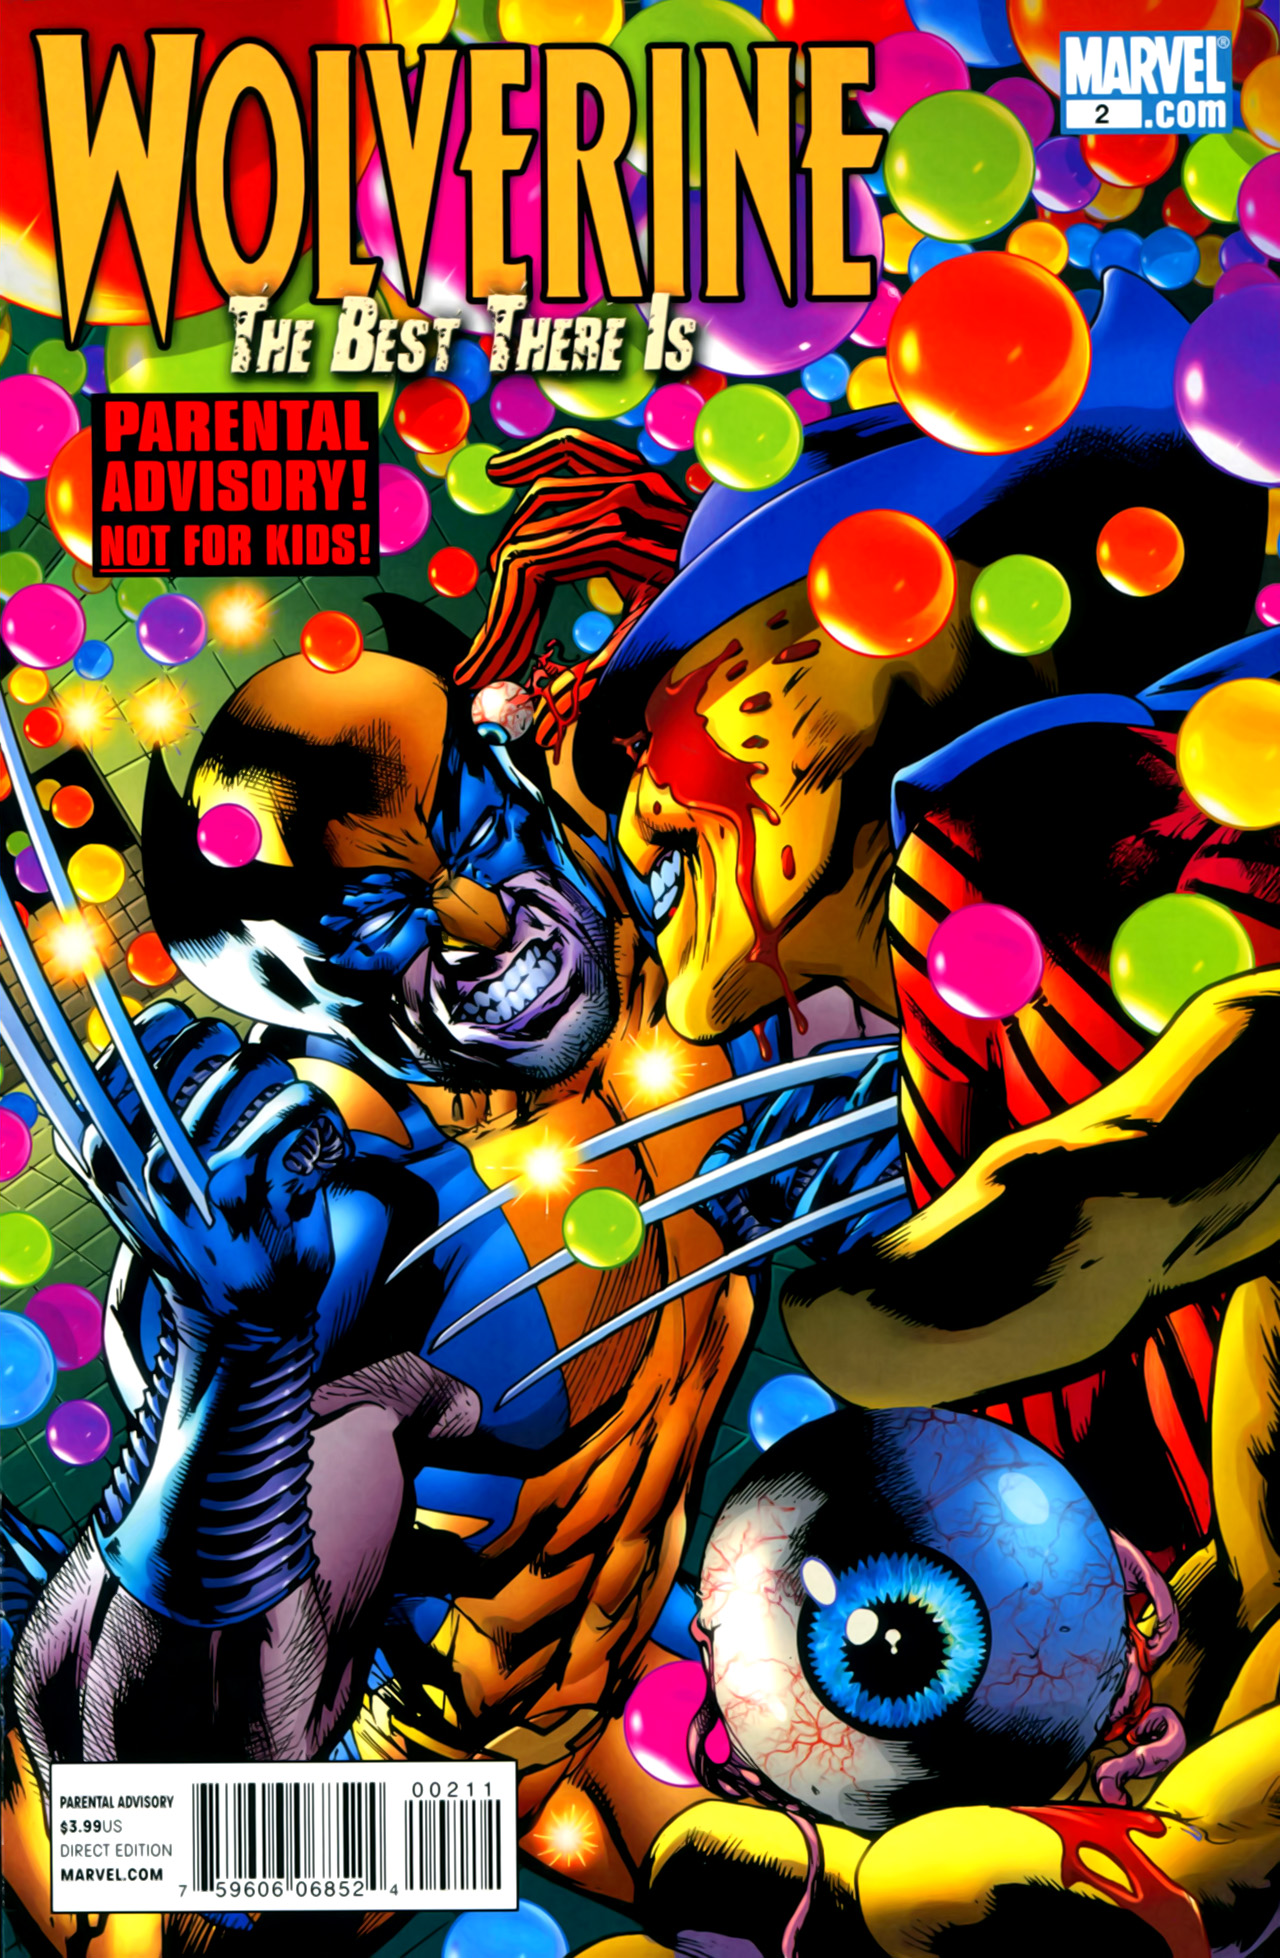 Read online Wolverine: The Best There Is comic -  Issue #2 - 1